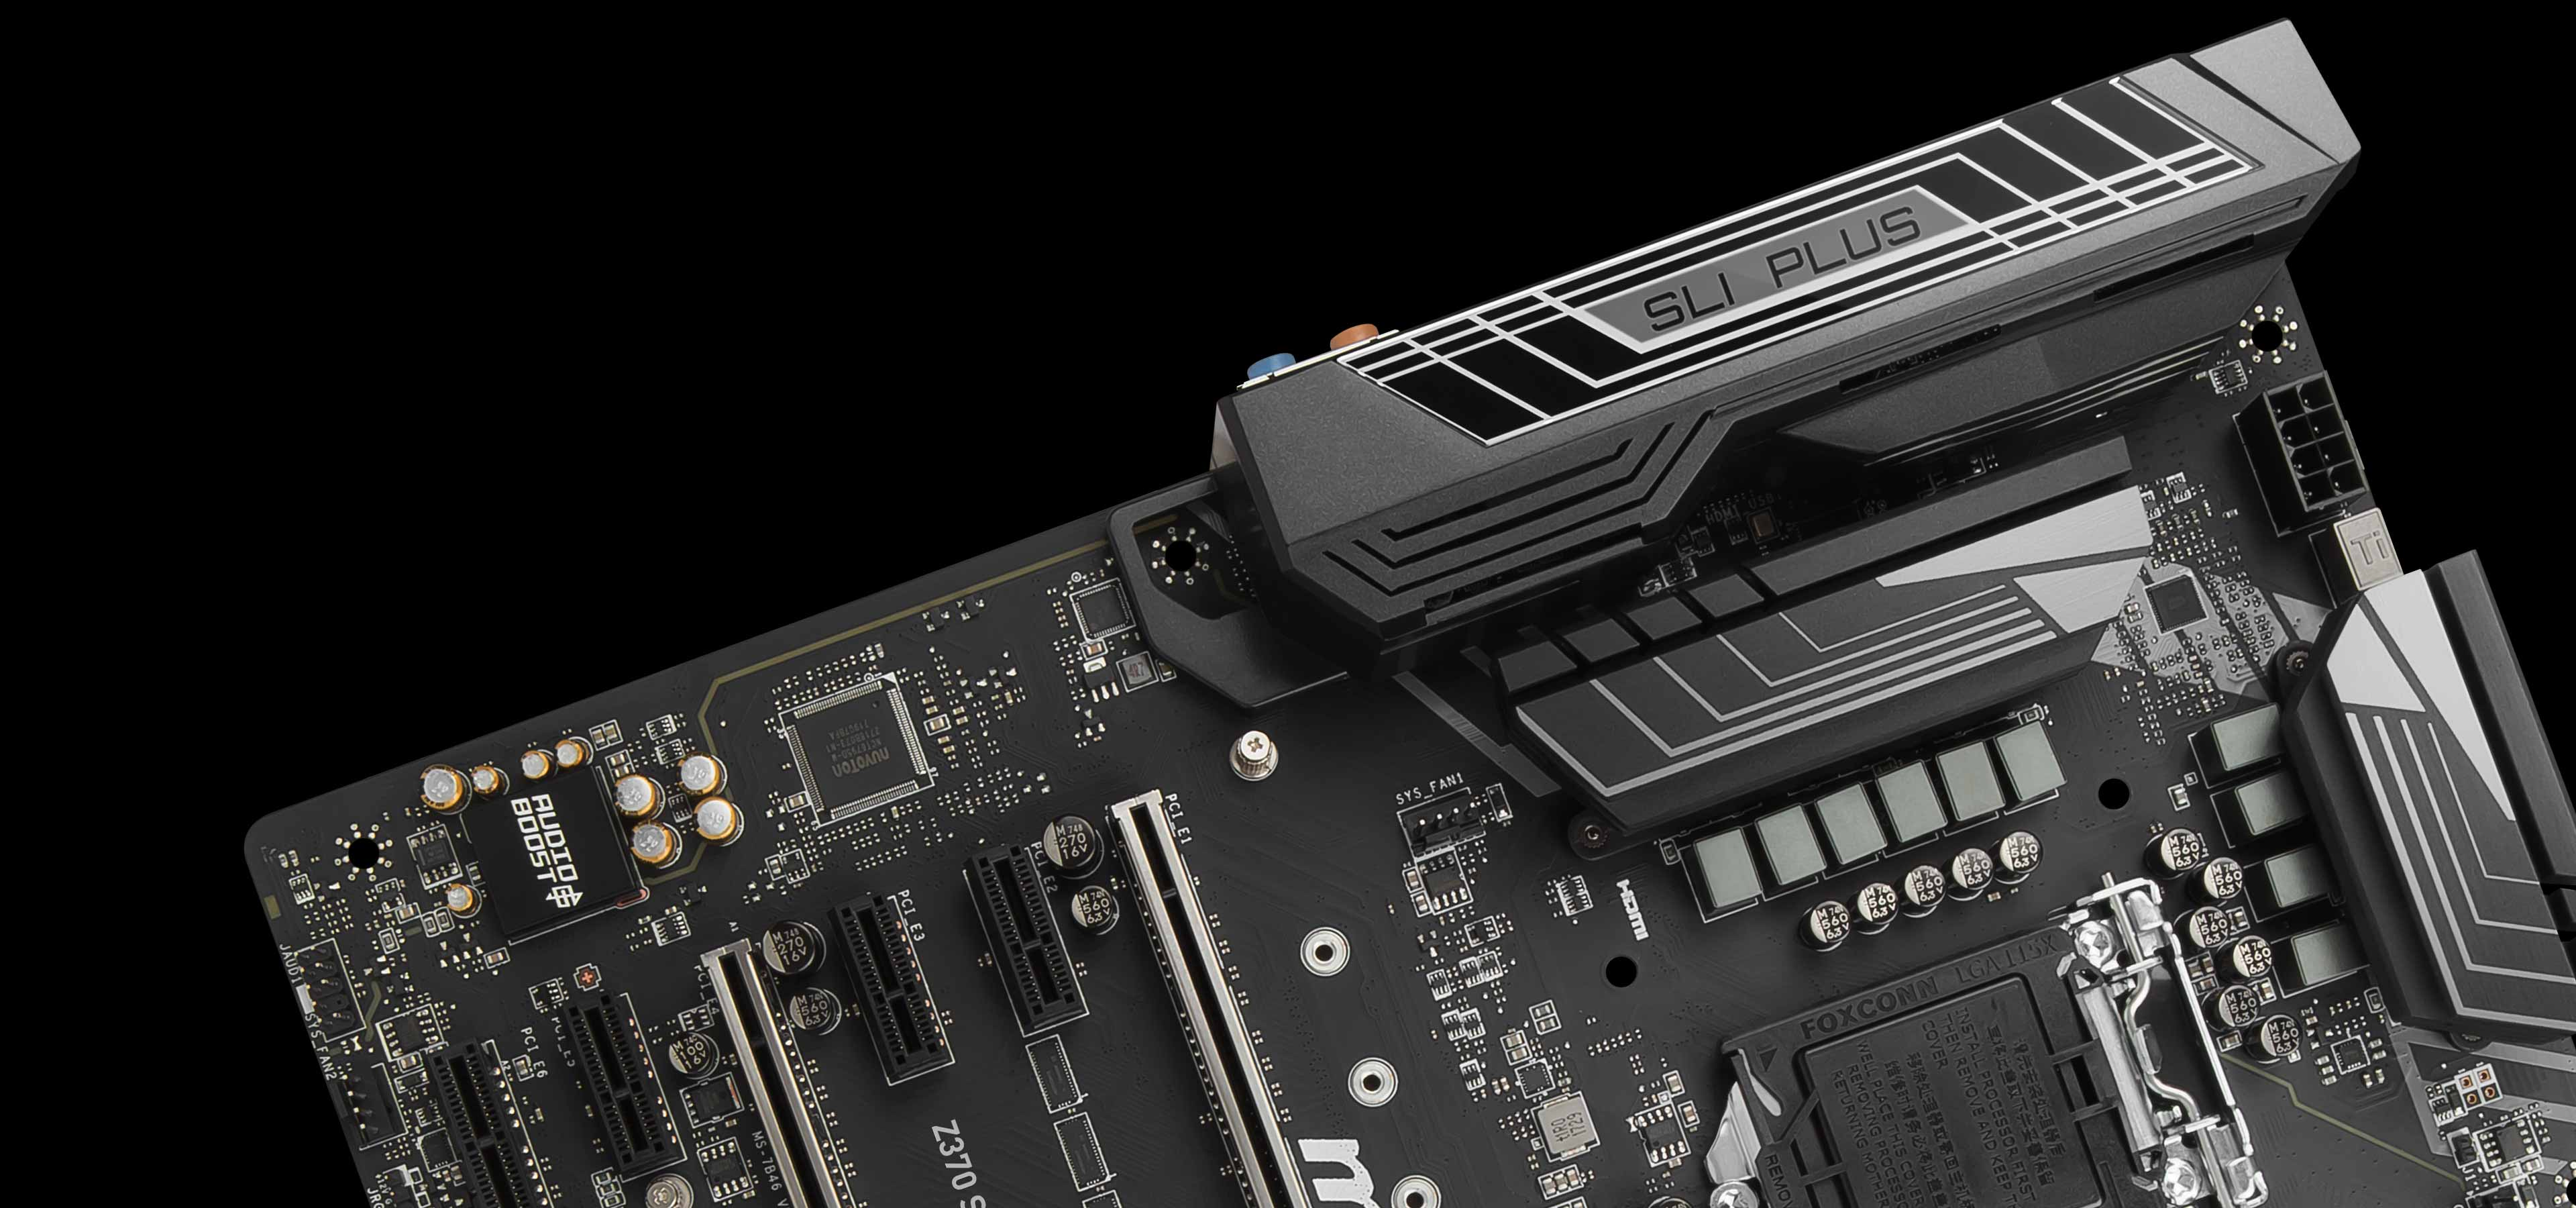 Z370 SLI PLUS | Motherboard - The world leader in